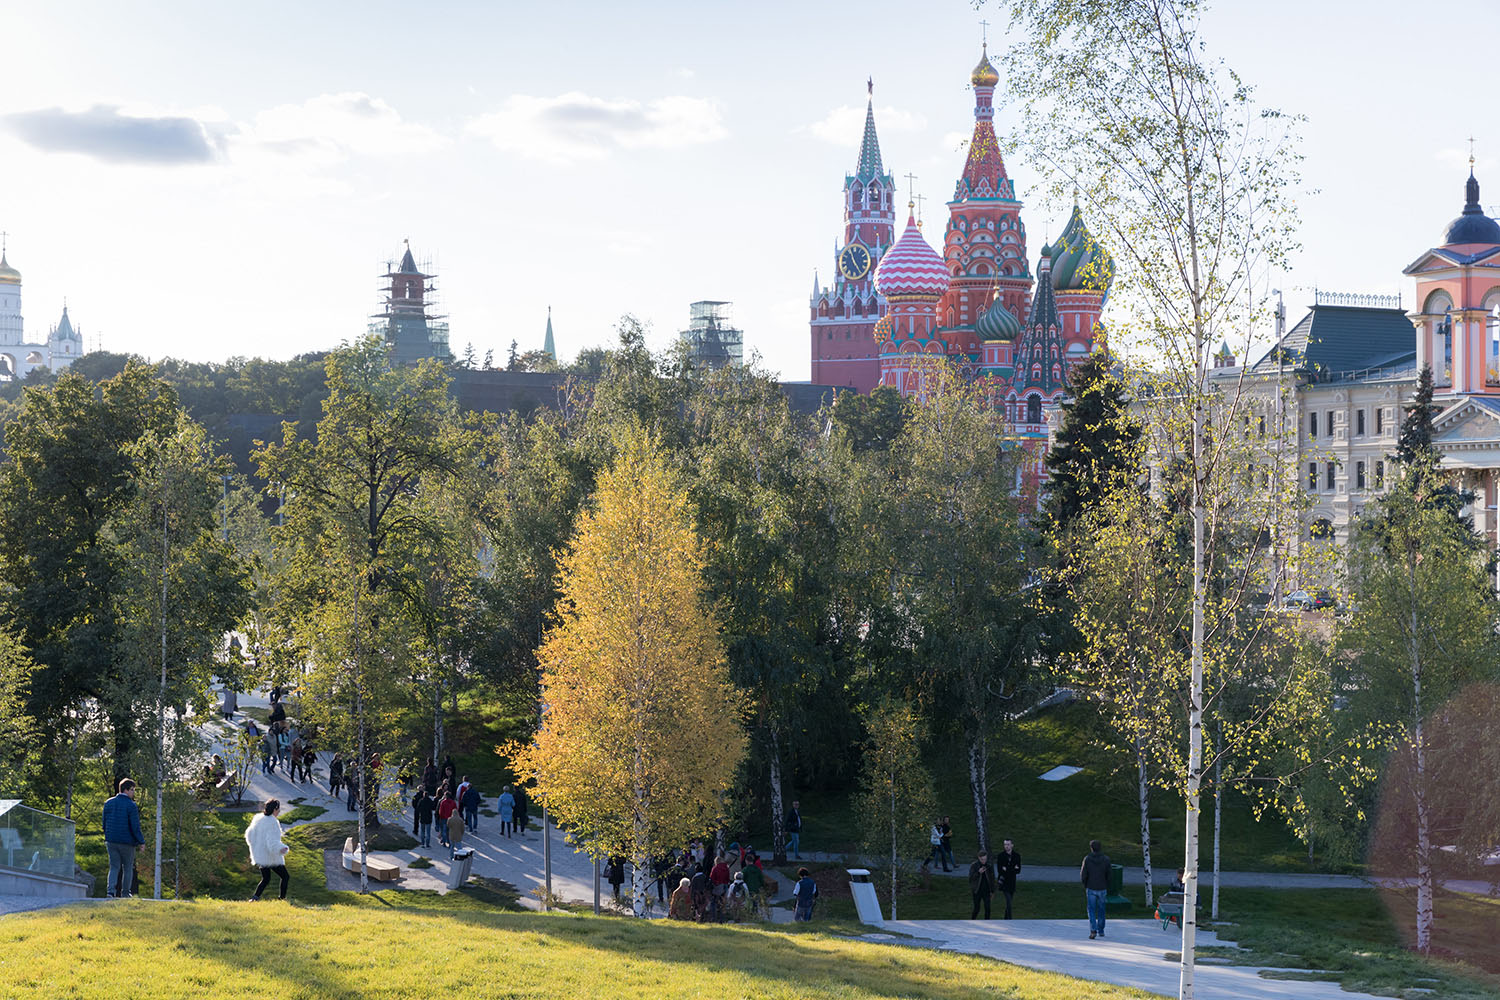 Birch Forest Landscape Zone: View of St. Basil's Cathedral, Zaryadye Park Photography by Iwan Baan